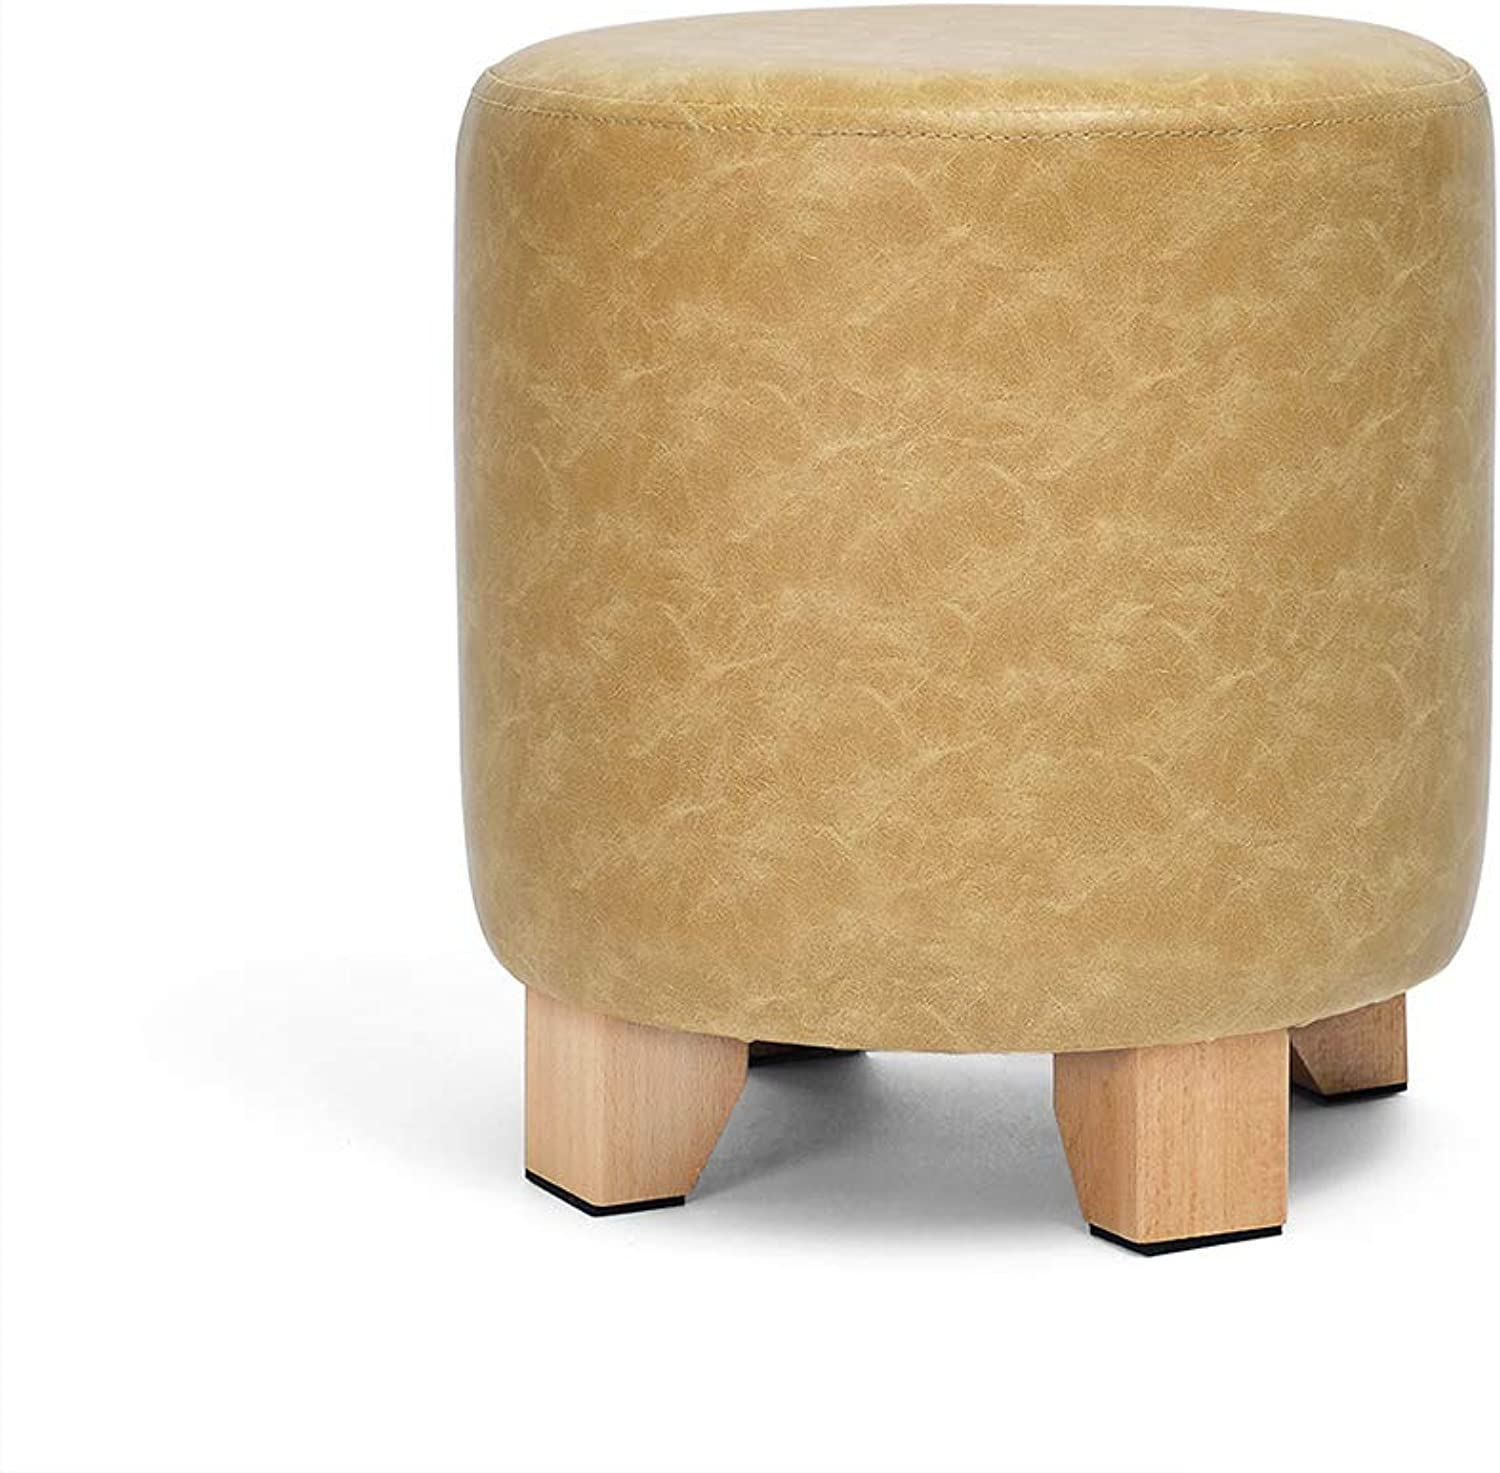 European Chair Solid Wood Stool, Fashion Leather Stool, Creative Sofa Stool, Low Stool, Home, Change shoes, Stool (color   B, Size   30CM)